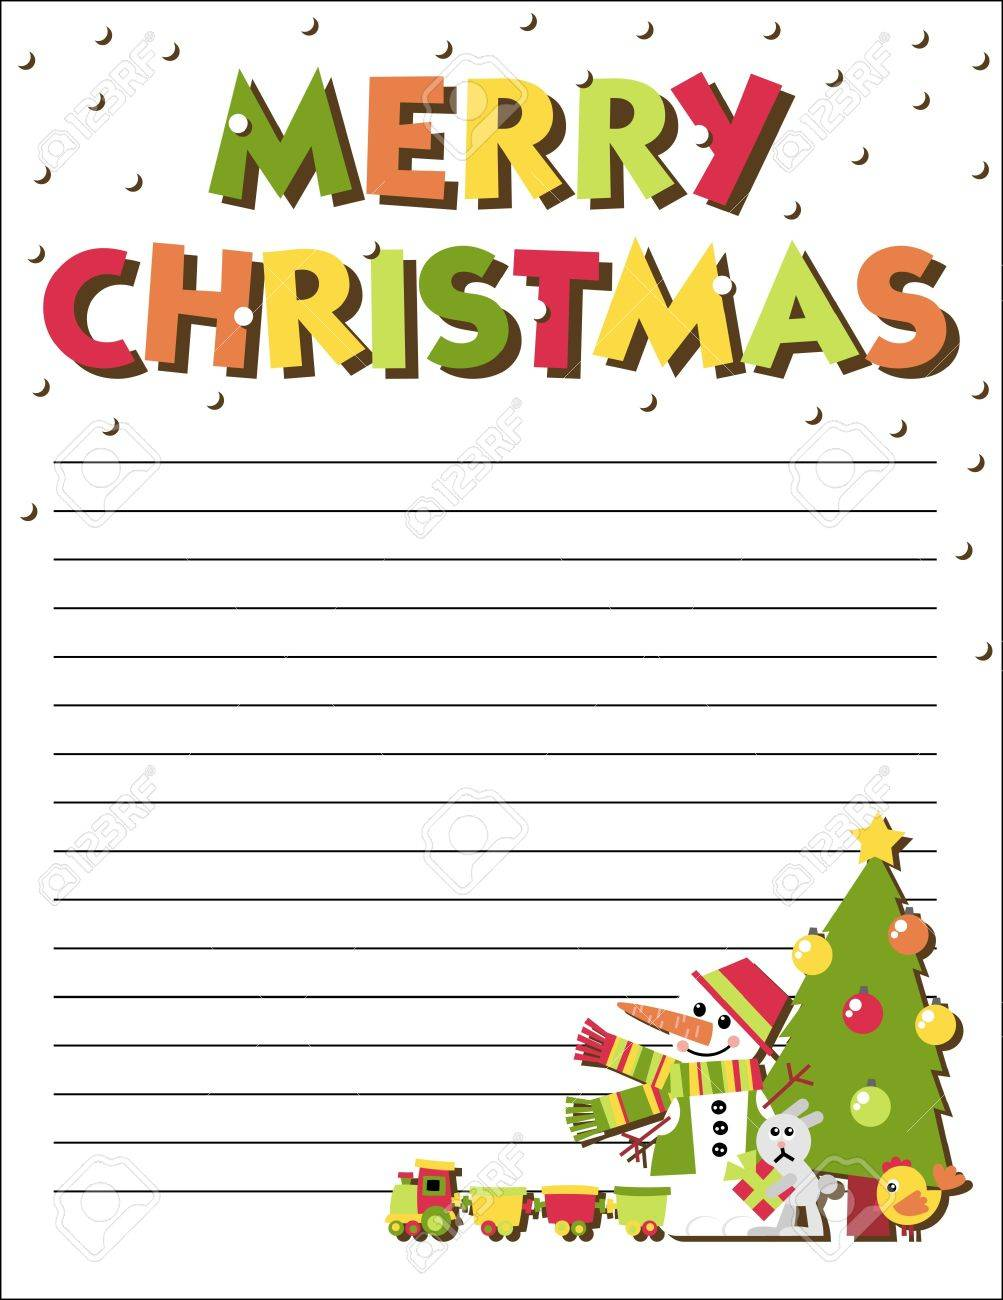 Form Letters To Santa Claus With An Illustration Royalty Free